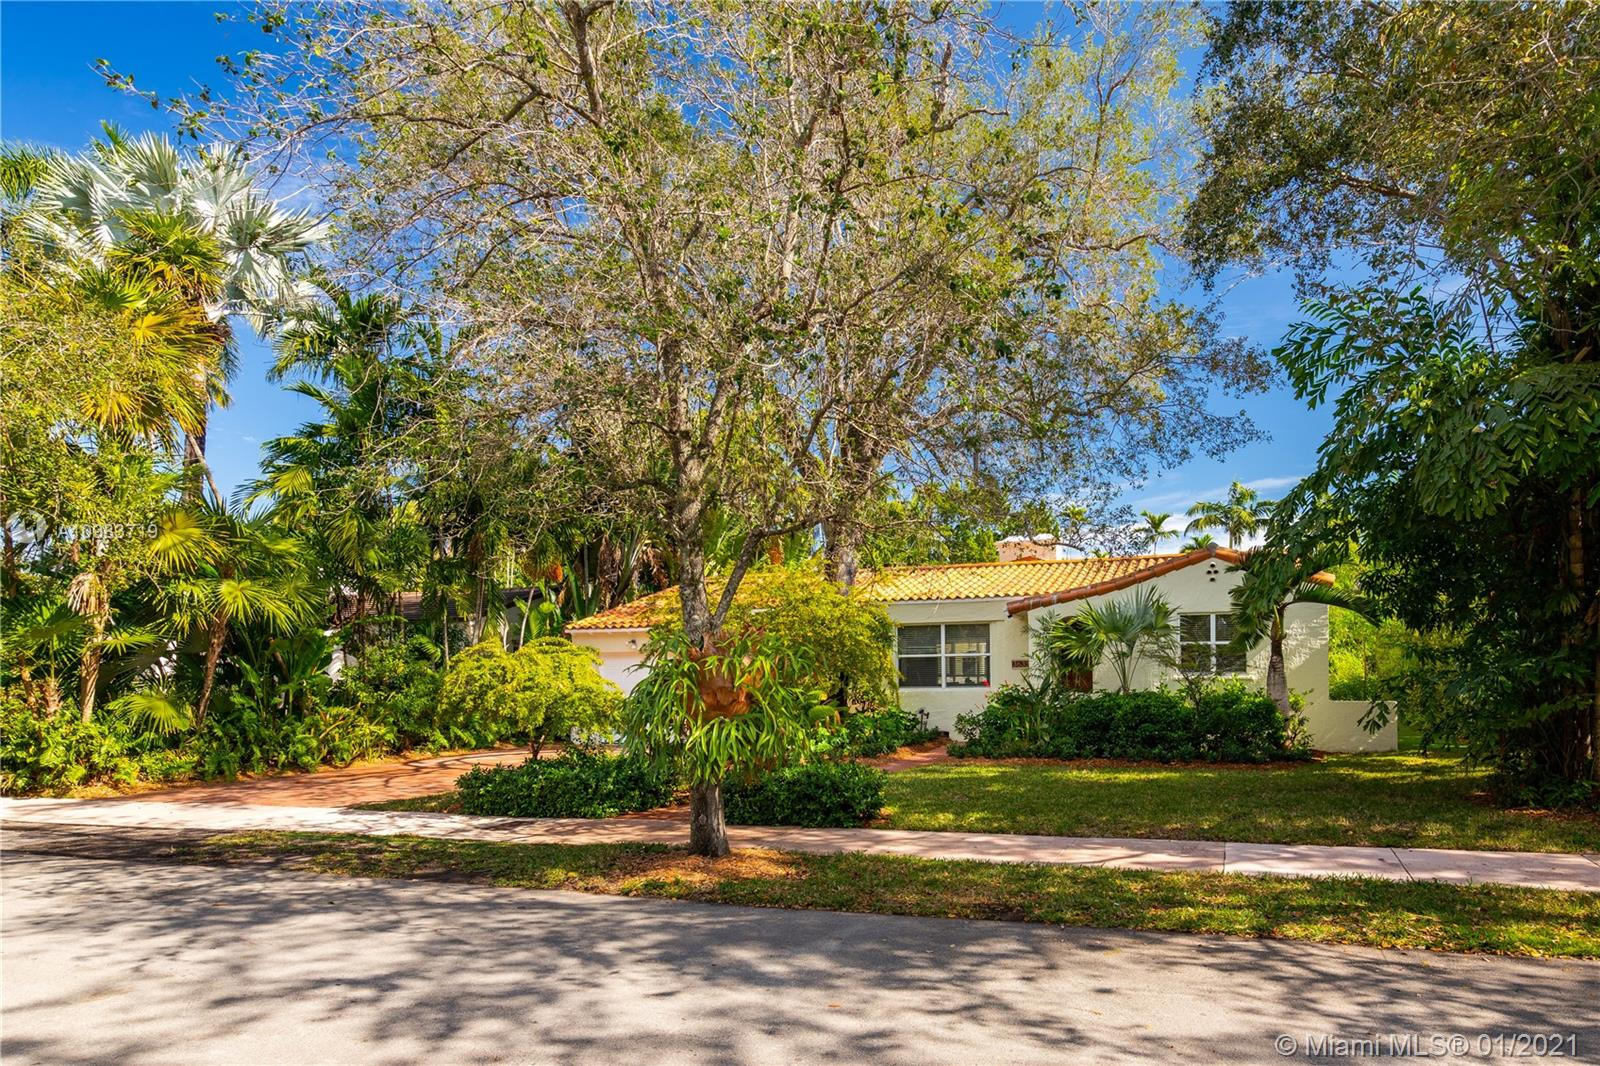 This beautiful Coral Gables home is a real find. Located on a quiet, low traffic street complete with sidewalks and quaint streetlamps, this home has been lovingly updated and expanded over the years. Luscious landscaping, replete with a butterfly garden and a large 11,100 sf lot, provides much breathing room and outdoor spaces to play and entertain. The split floorplan and the generous living spaces check more essential boxes off a buyer's wish list. Who would not want to cook in this fabulous kitchen? The master suite includes an updated spacious bath, large walk-in closet, and a bay window begging for you to curl up with a book while overlooking the pool. Impact doors and windows allow lots of natural light.  Major renovation was completed in 2006. A Very Special Home.